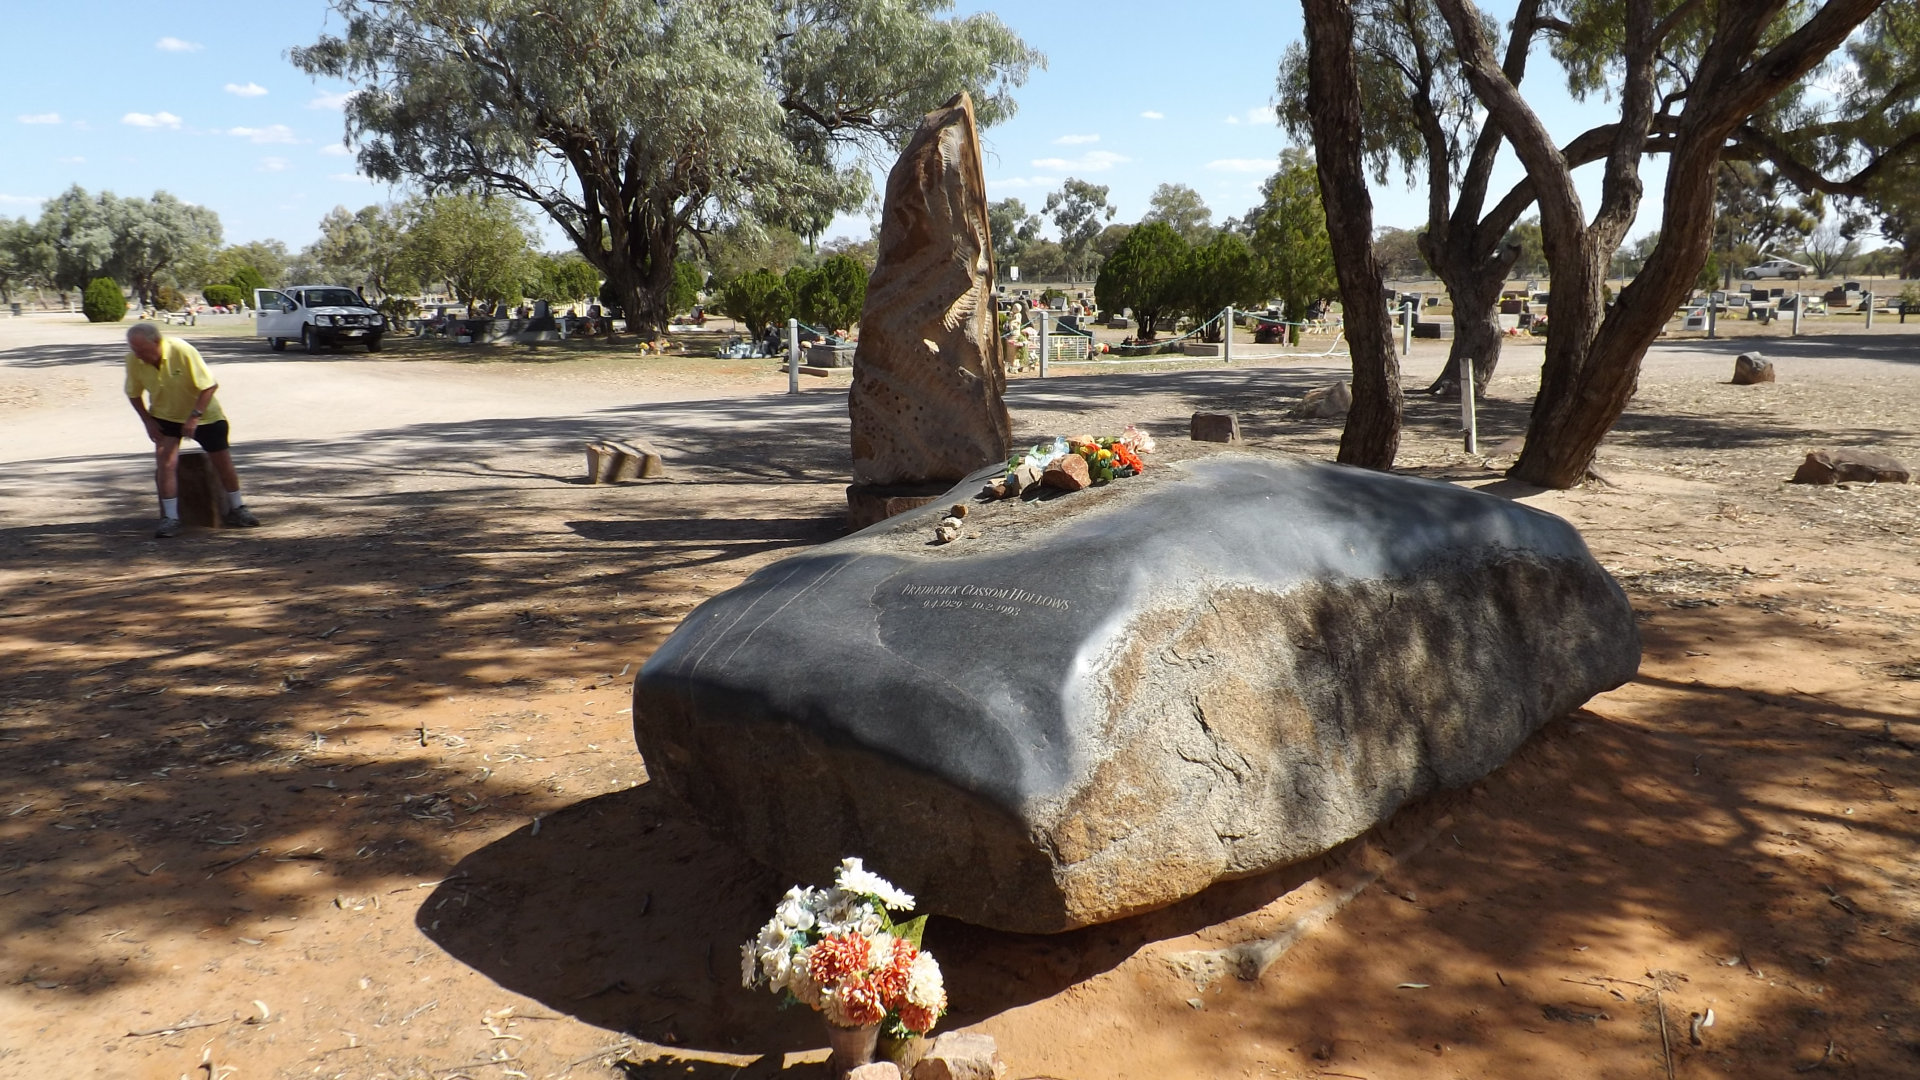 Fred Hollows grave site in the Bourke Historical Cemetery in Outback NSW. Fred Hollows was an ophthalmologist who is known for his work in restoring eyesight to countless people, in Australia and abroad.